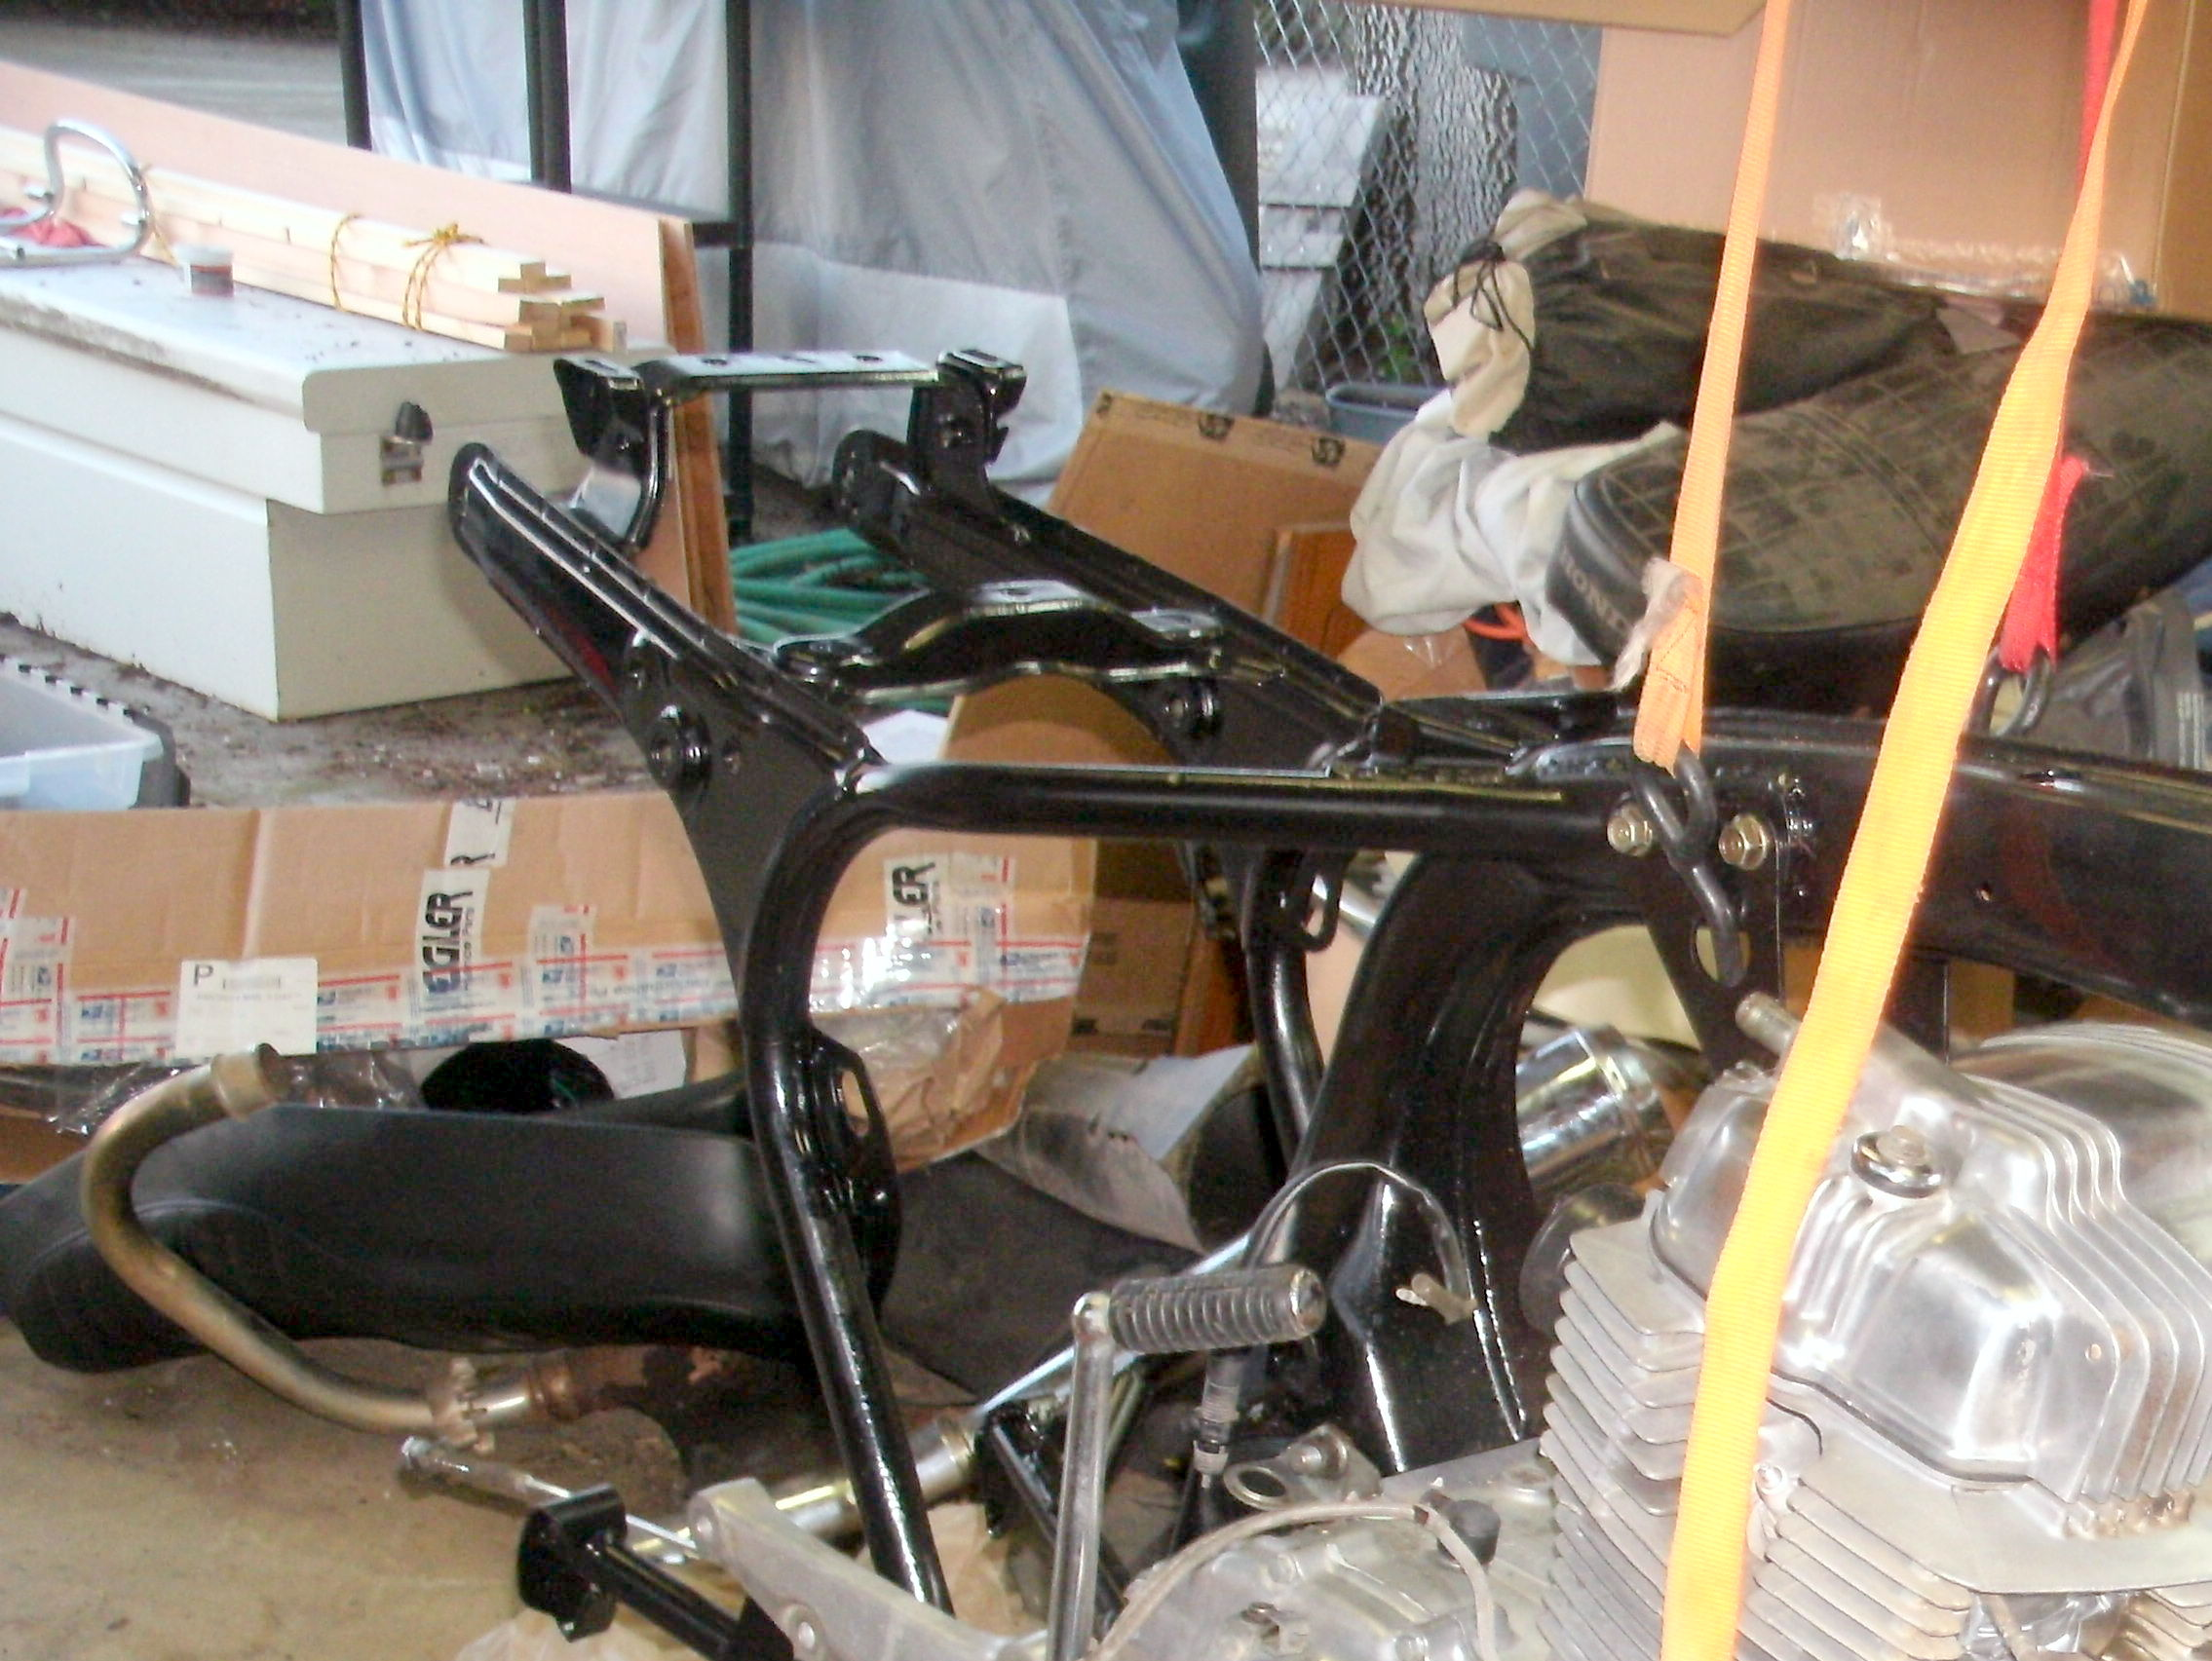 How to tackle a new seat for this bike-gedc2263-001.jpg